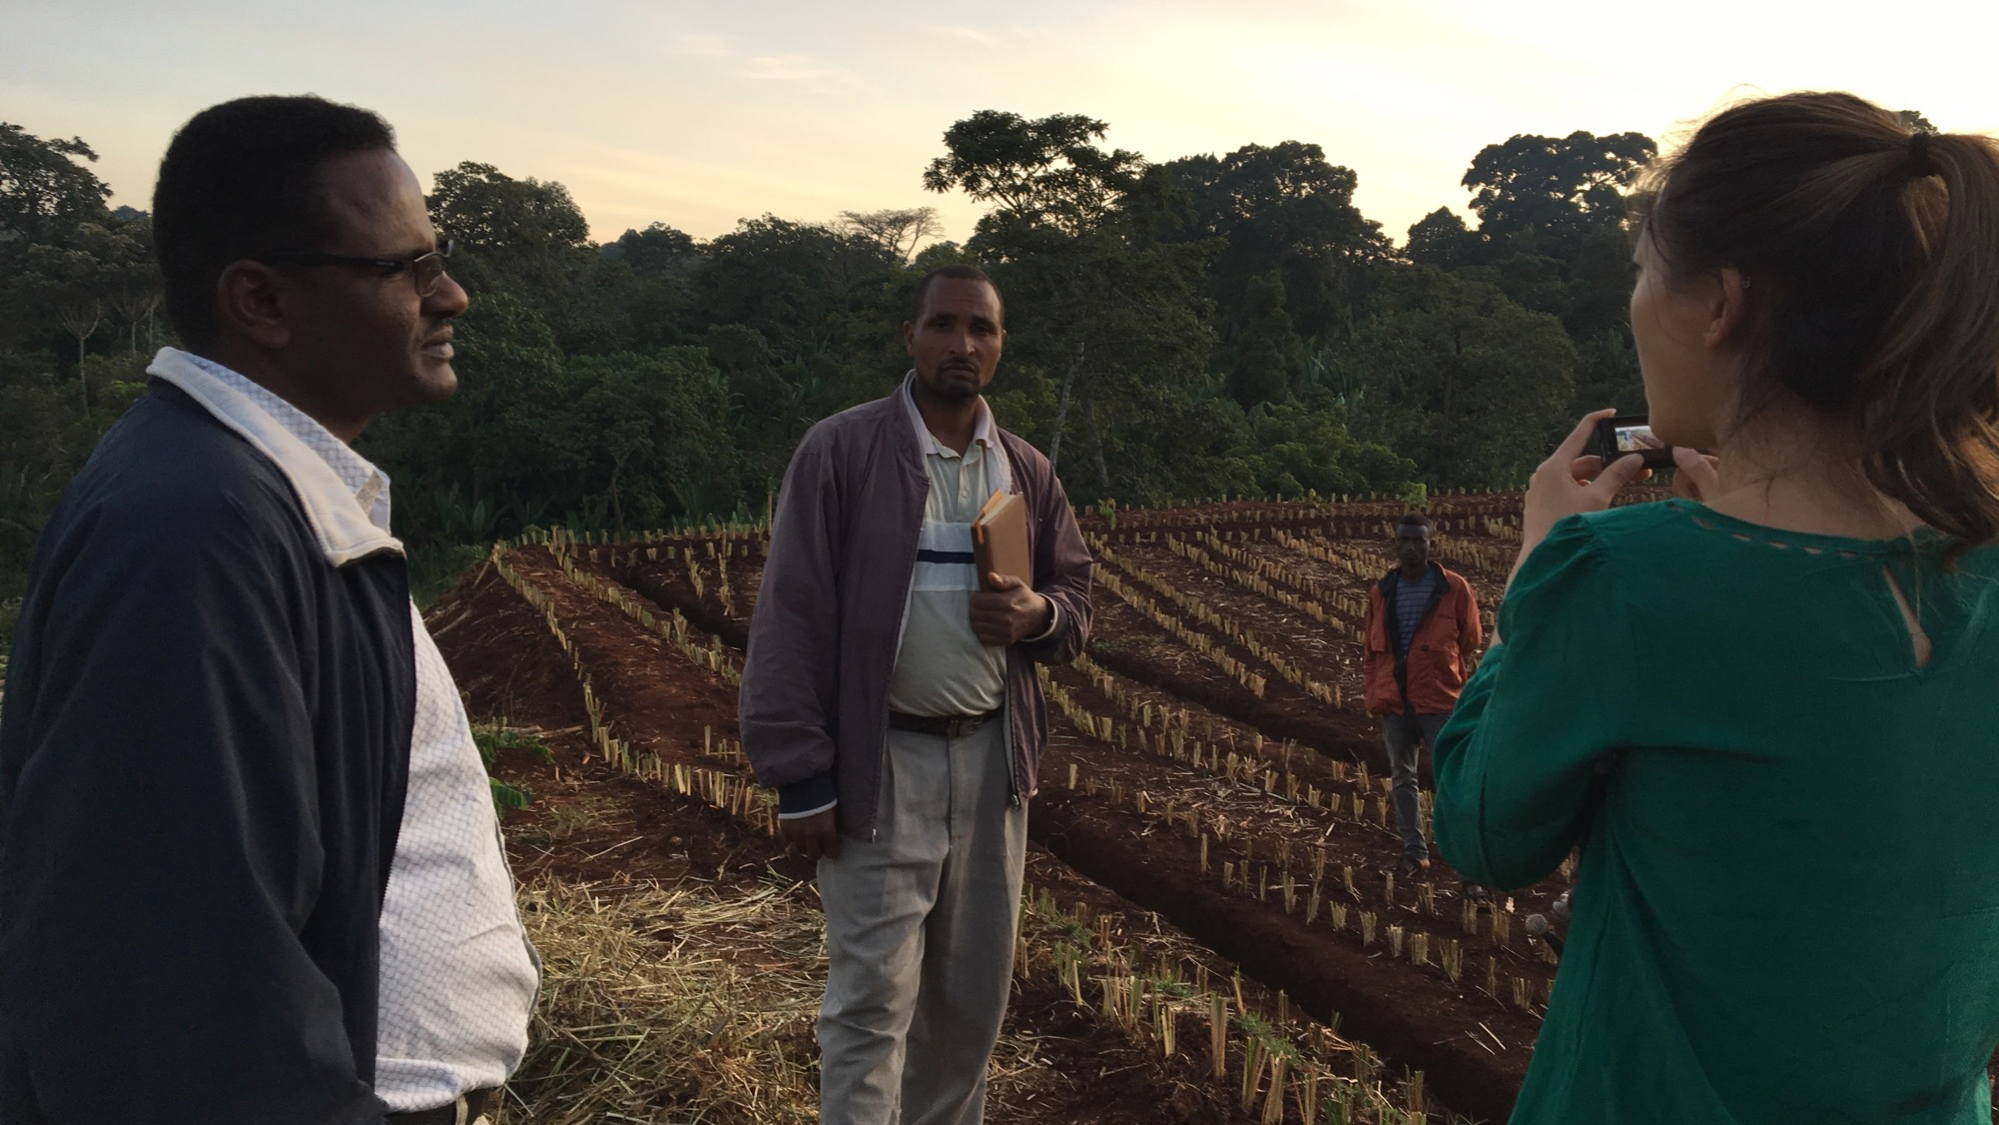 Photo of Ariana Day Yuen in Ethiopia. Ariana started an agroforestry enterprise after serving as a TechnoServe Fellow.